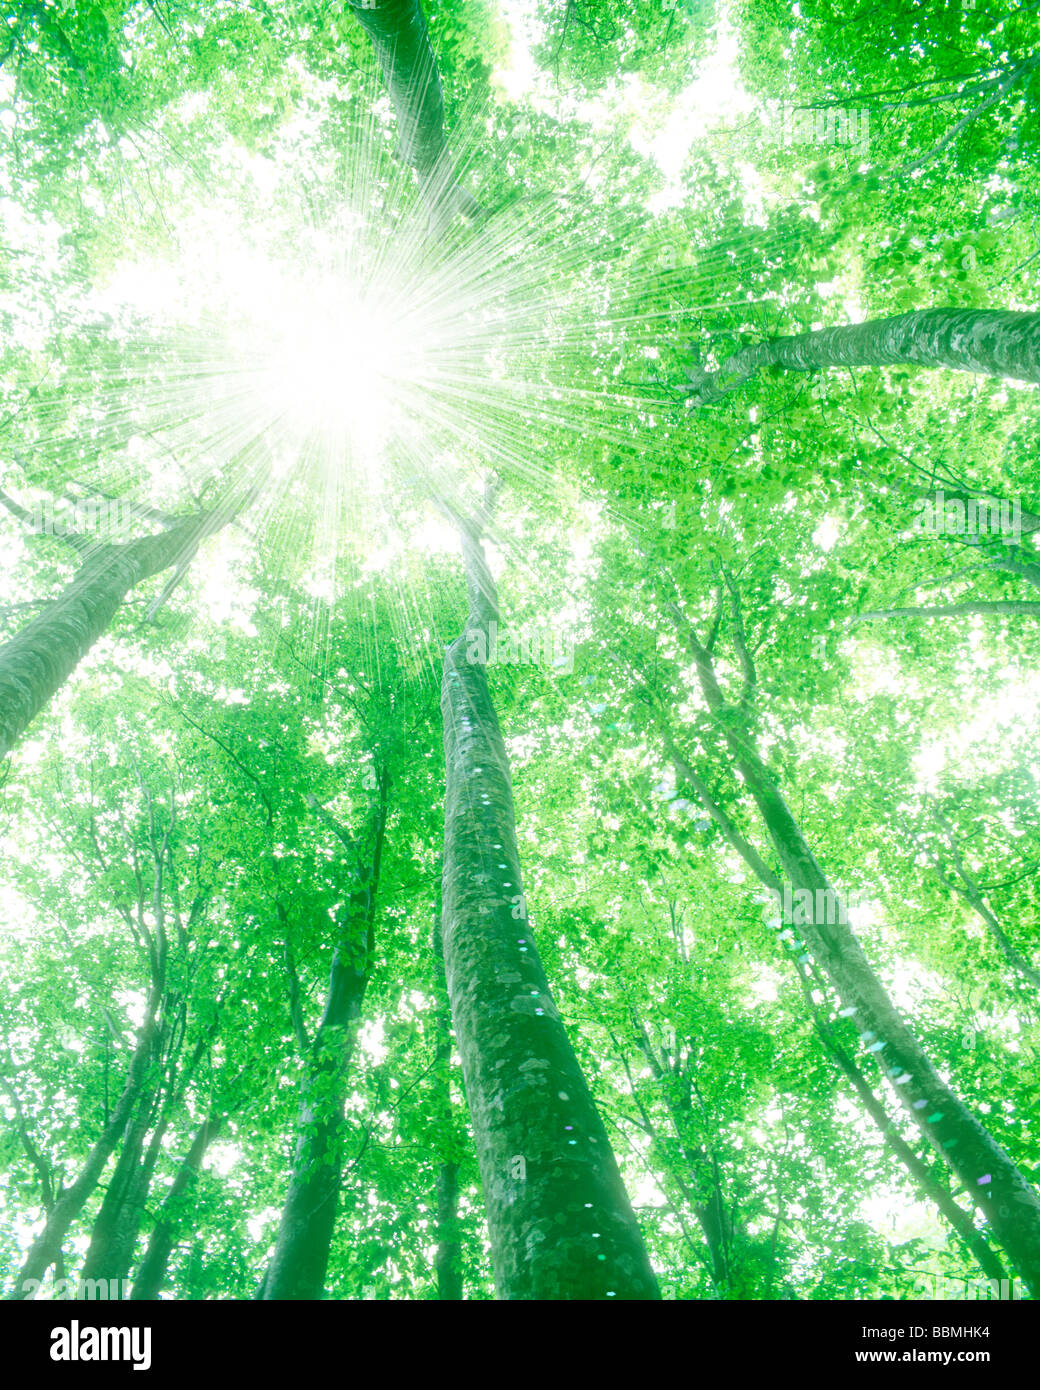 Sunshine through trees, view from below - Stock Image